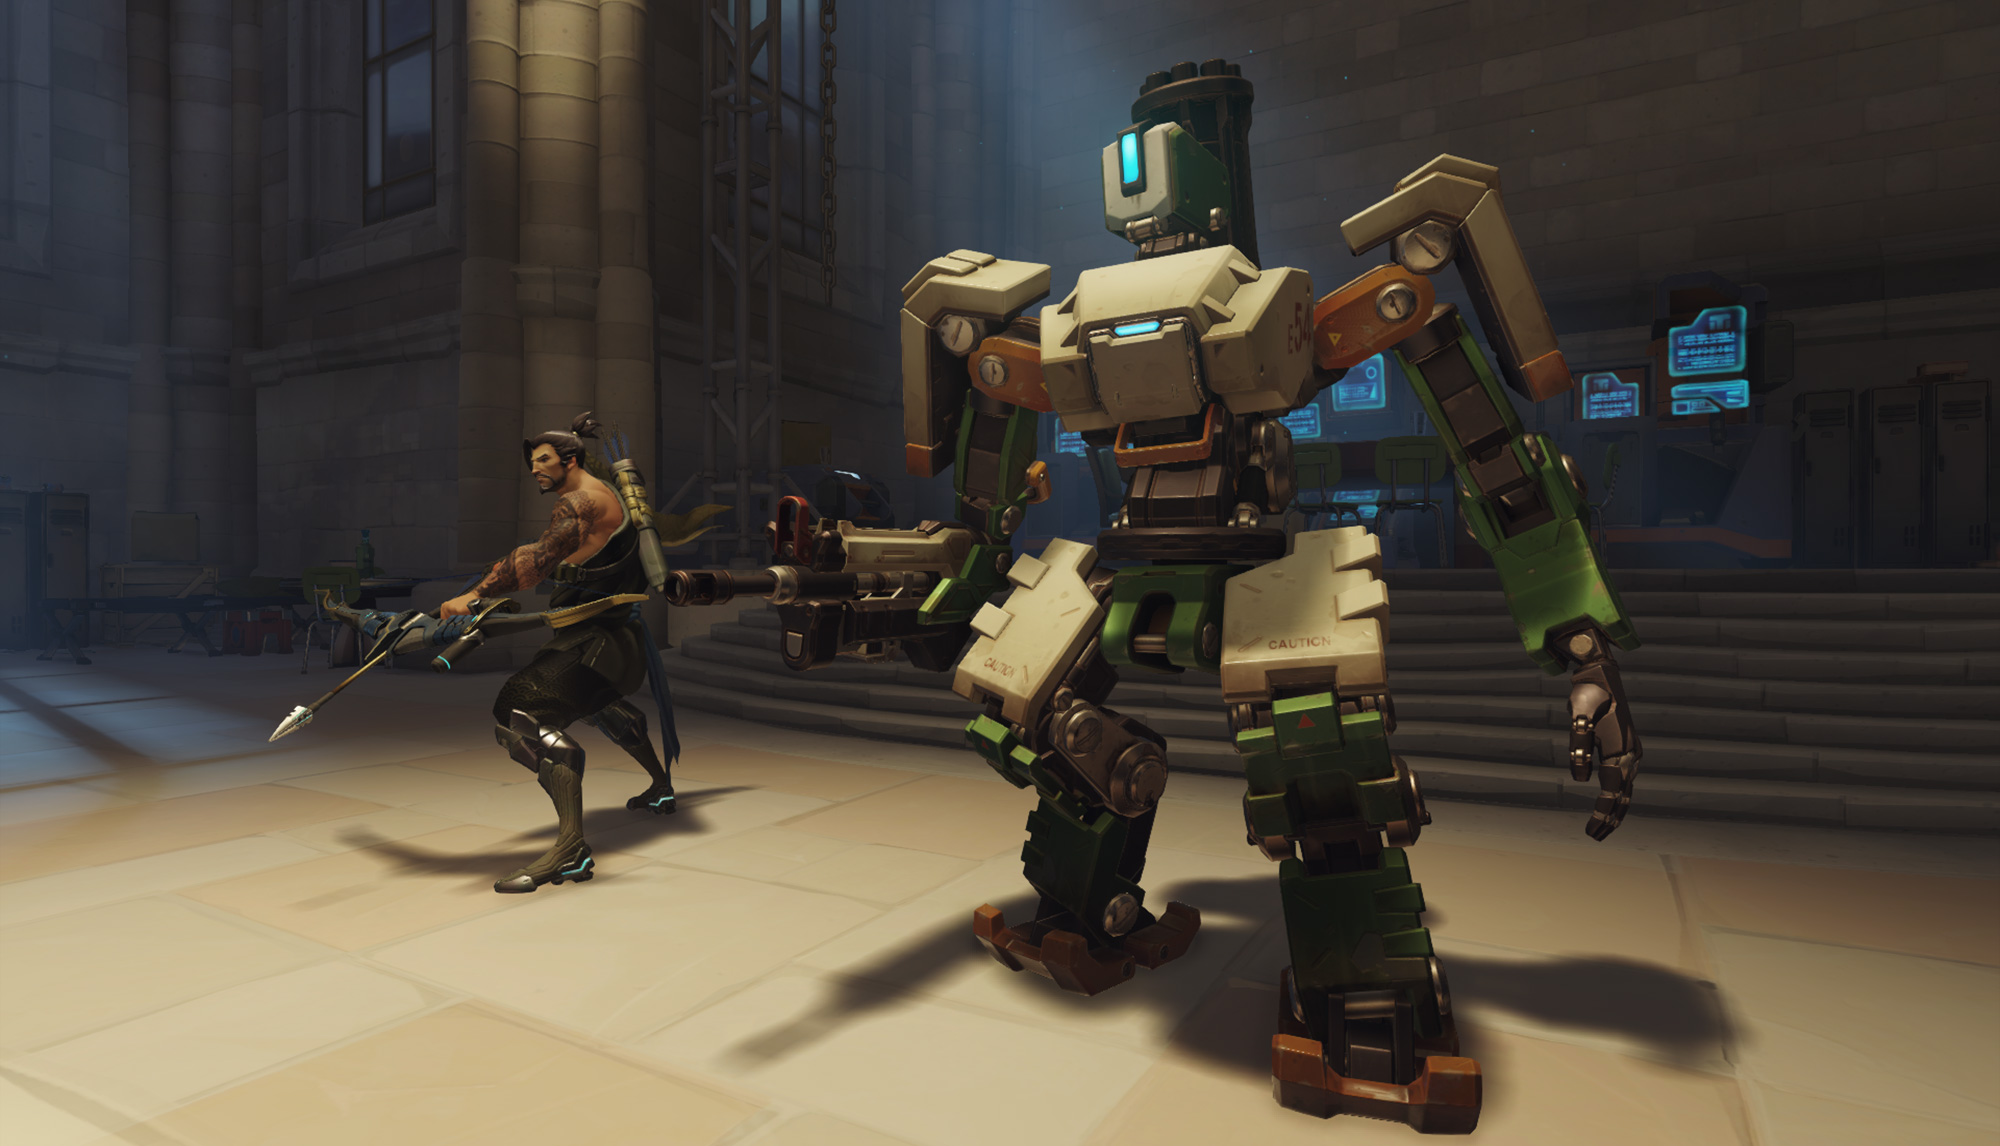 Overwatch footage features a transforming tank | PC Gamer